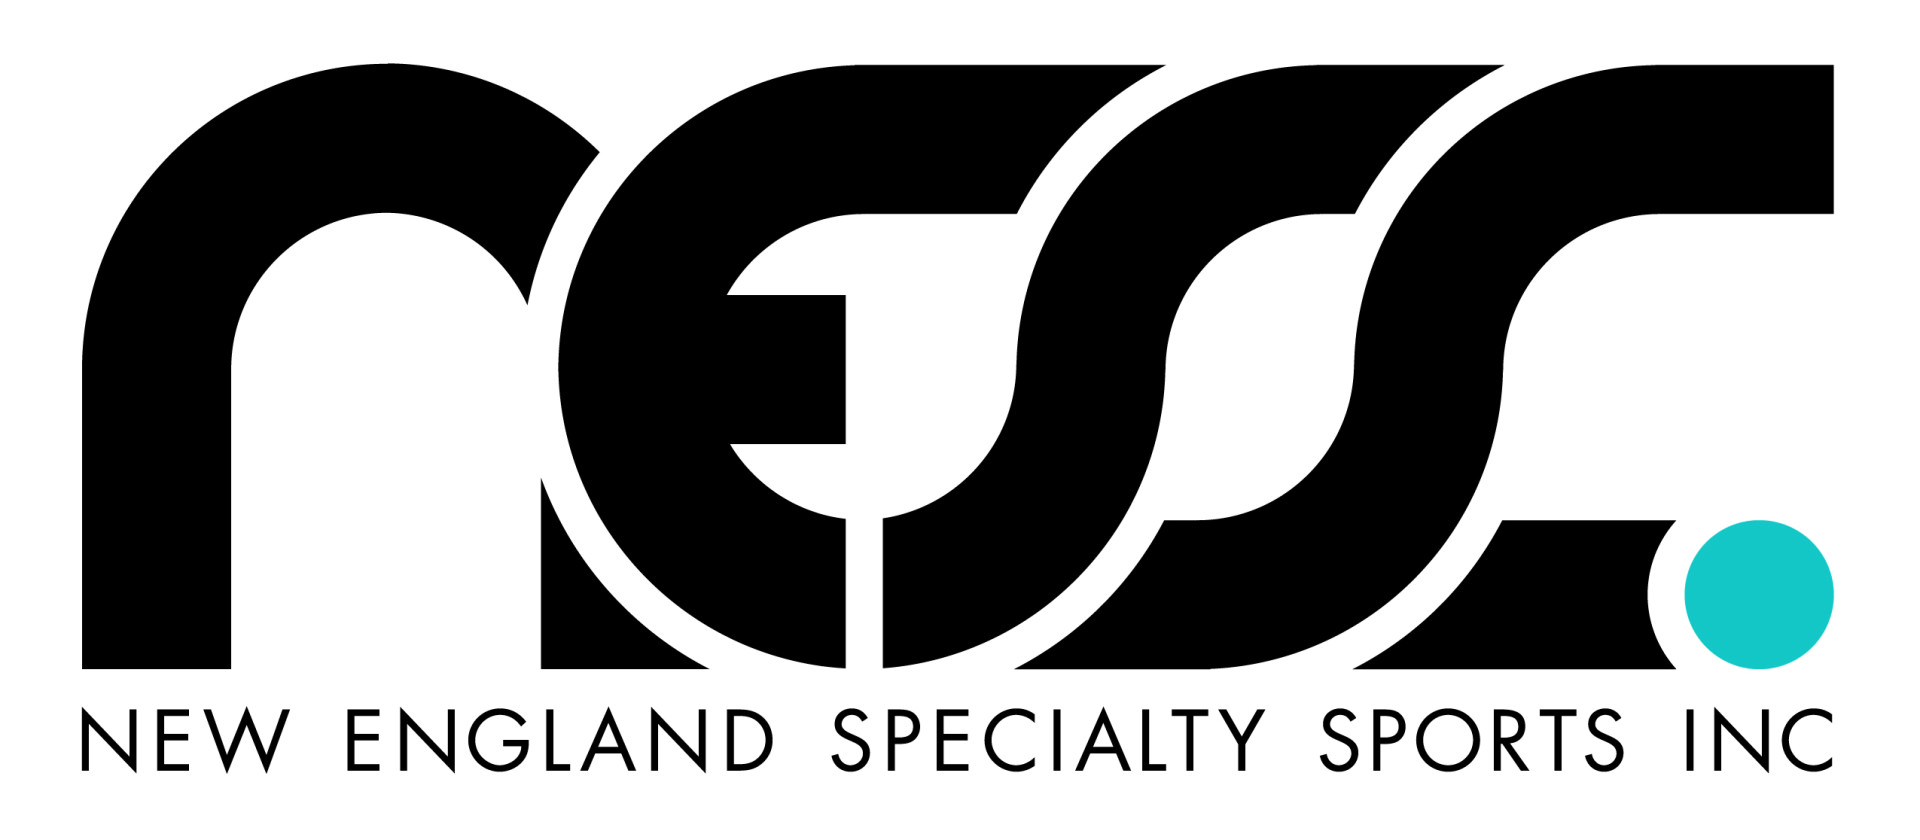 New England Specialty Sports Inc